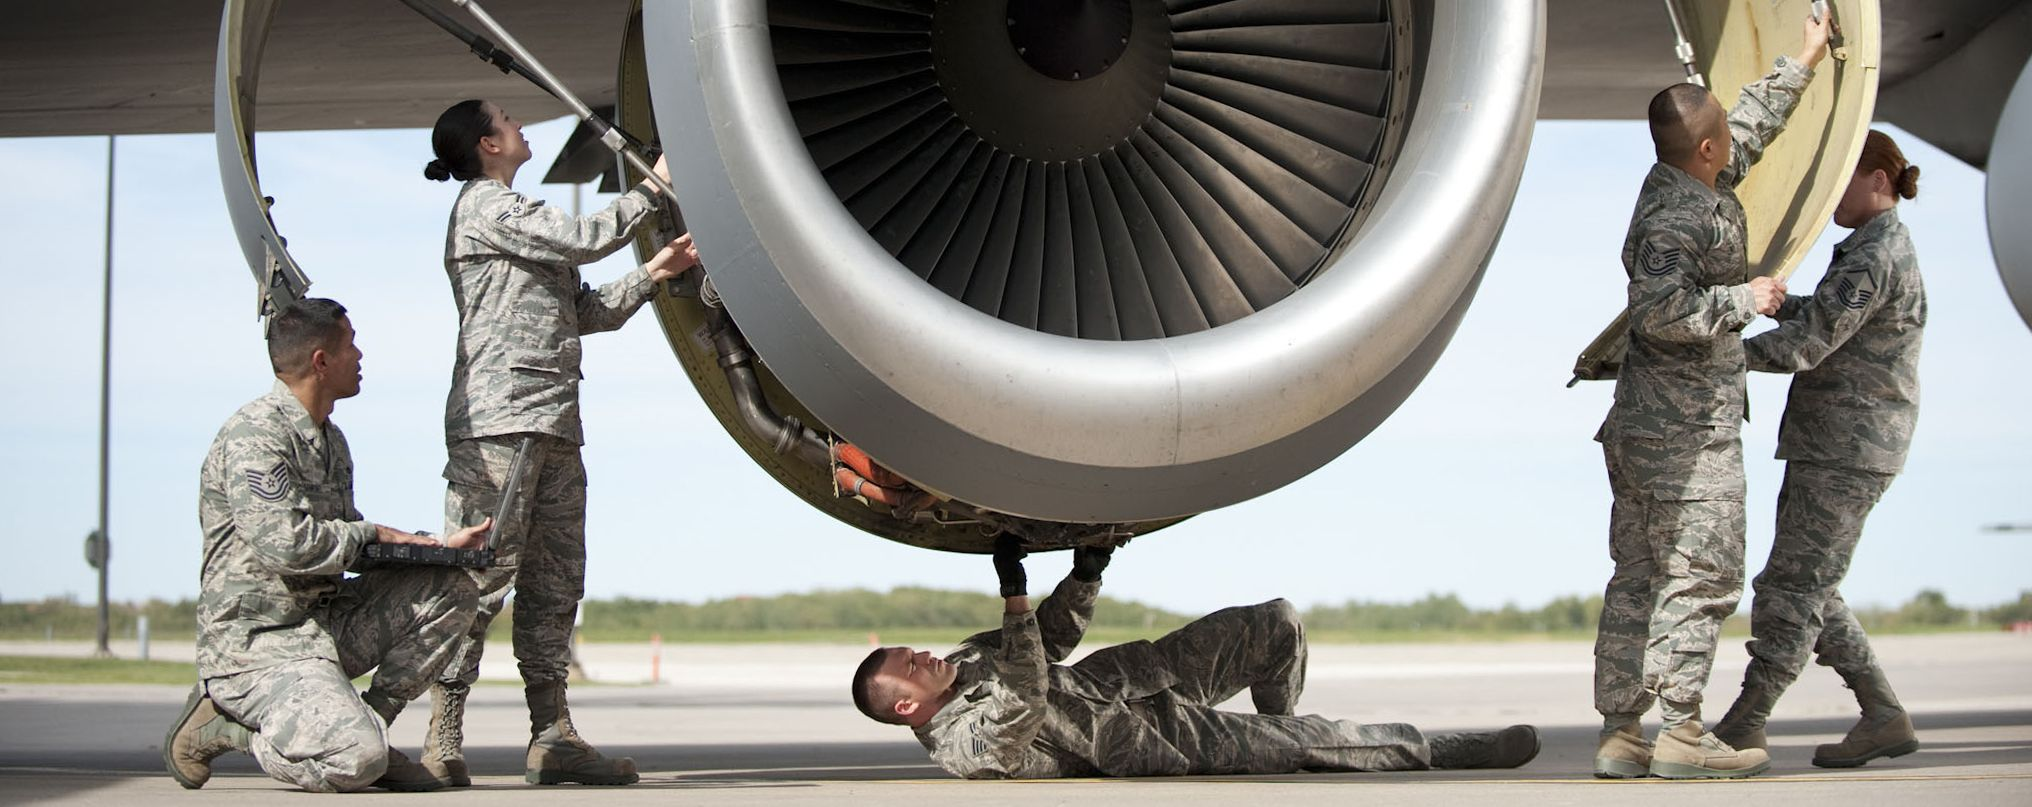 Tactical aircraft maintenance specialist Every aircraft